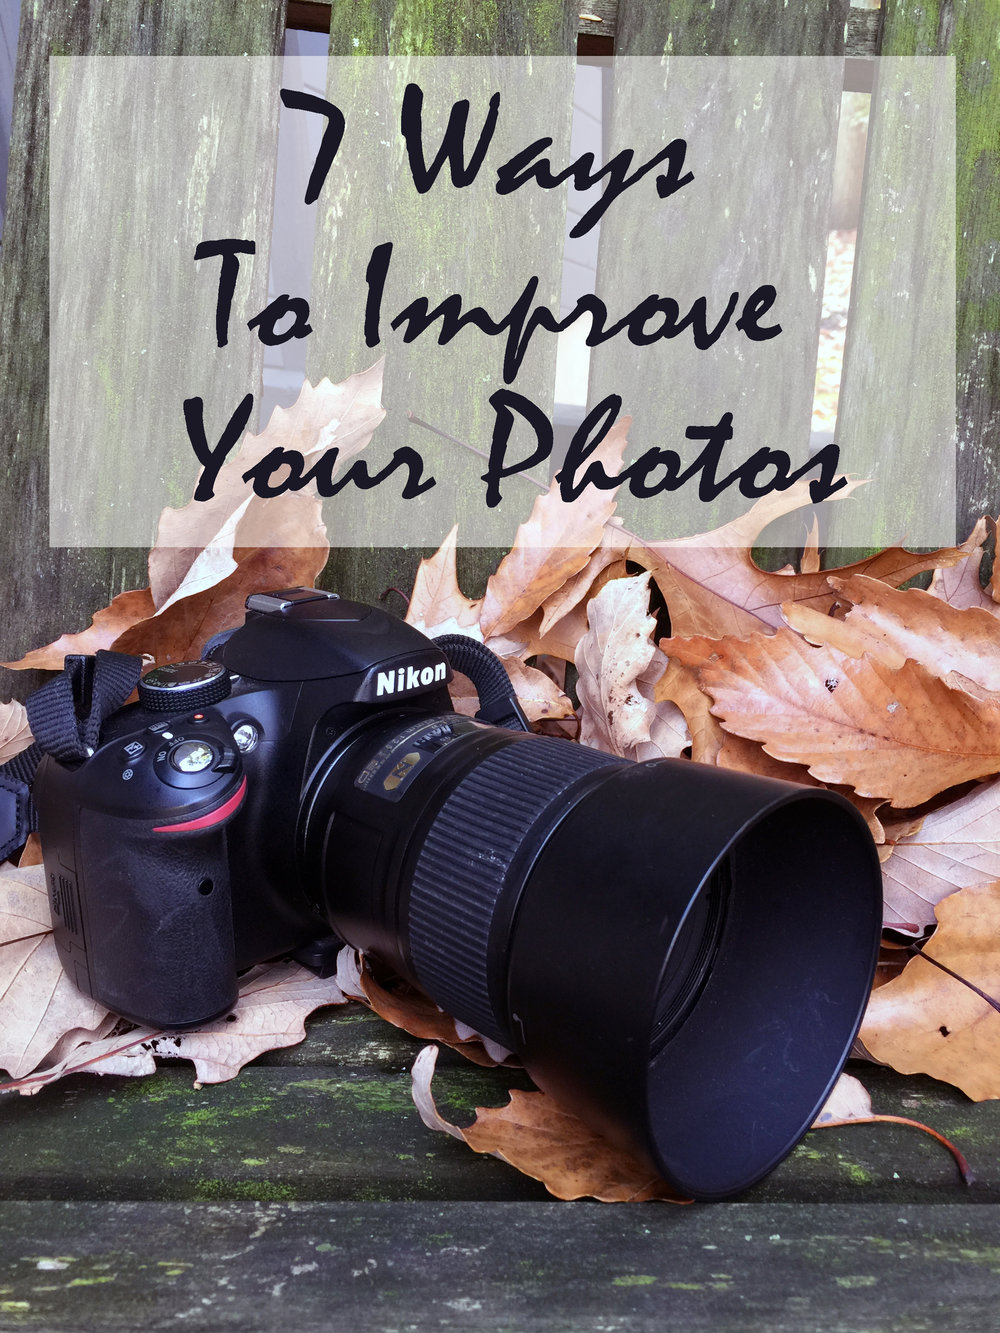 7 ways to improve your photos.jpg